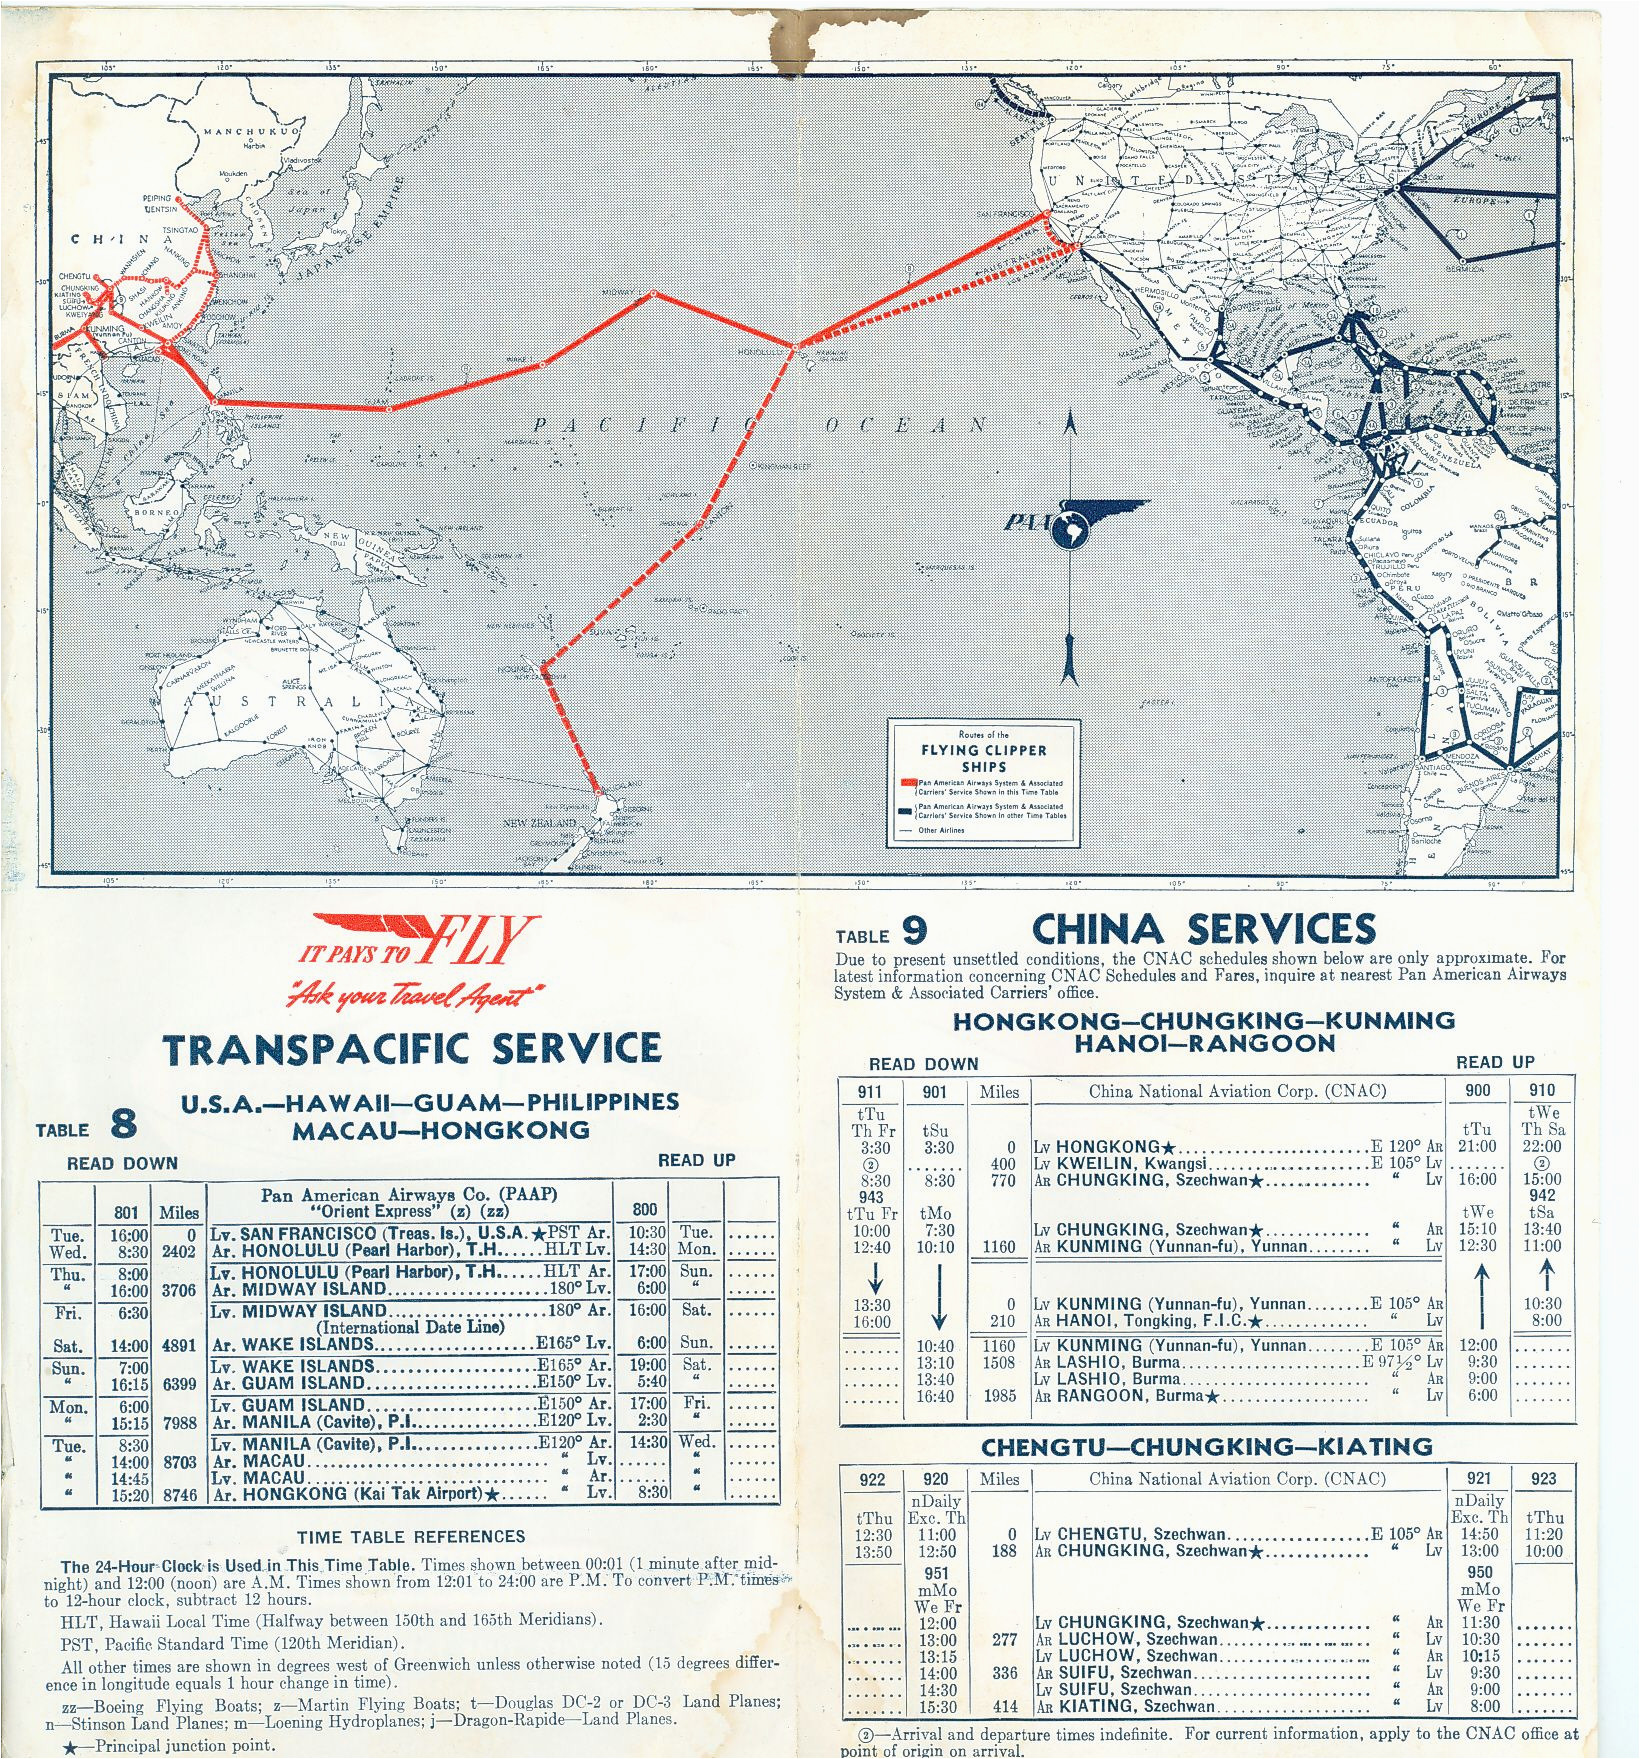 Air France Route Map Route Map and Schedules 1940 Pan American World Airways